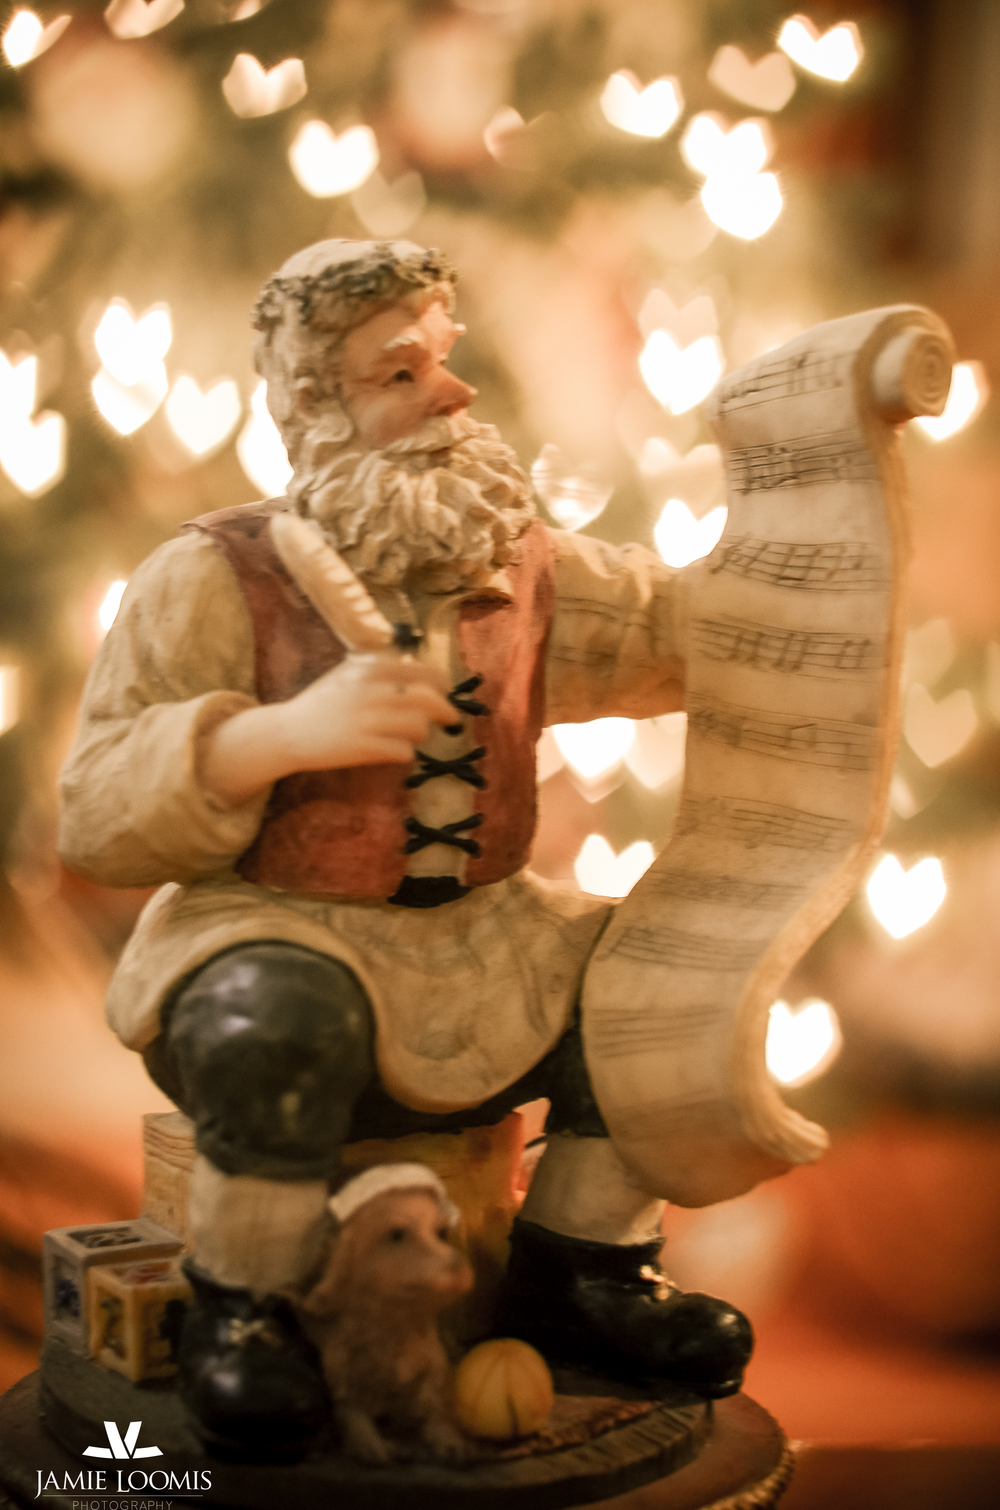 A Santa musicbox my husband gave me our first Christmas together. Since then I have collected a few others but this one is still my favorite!